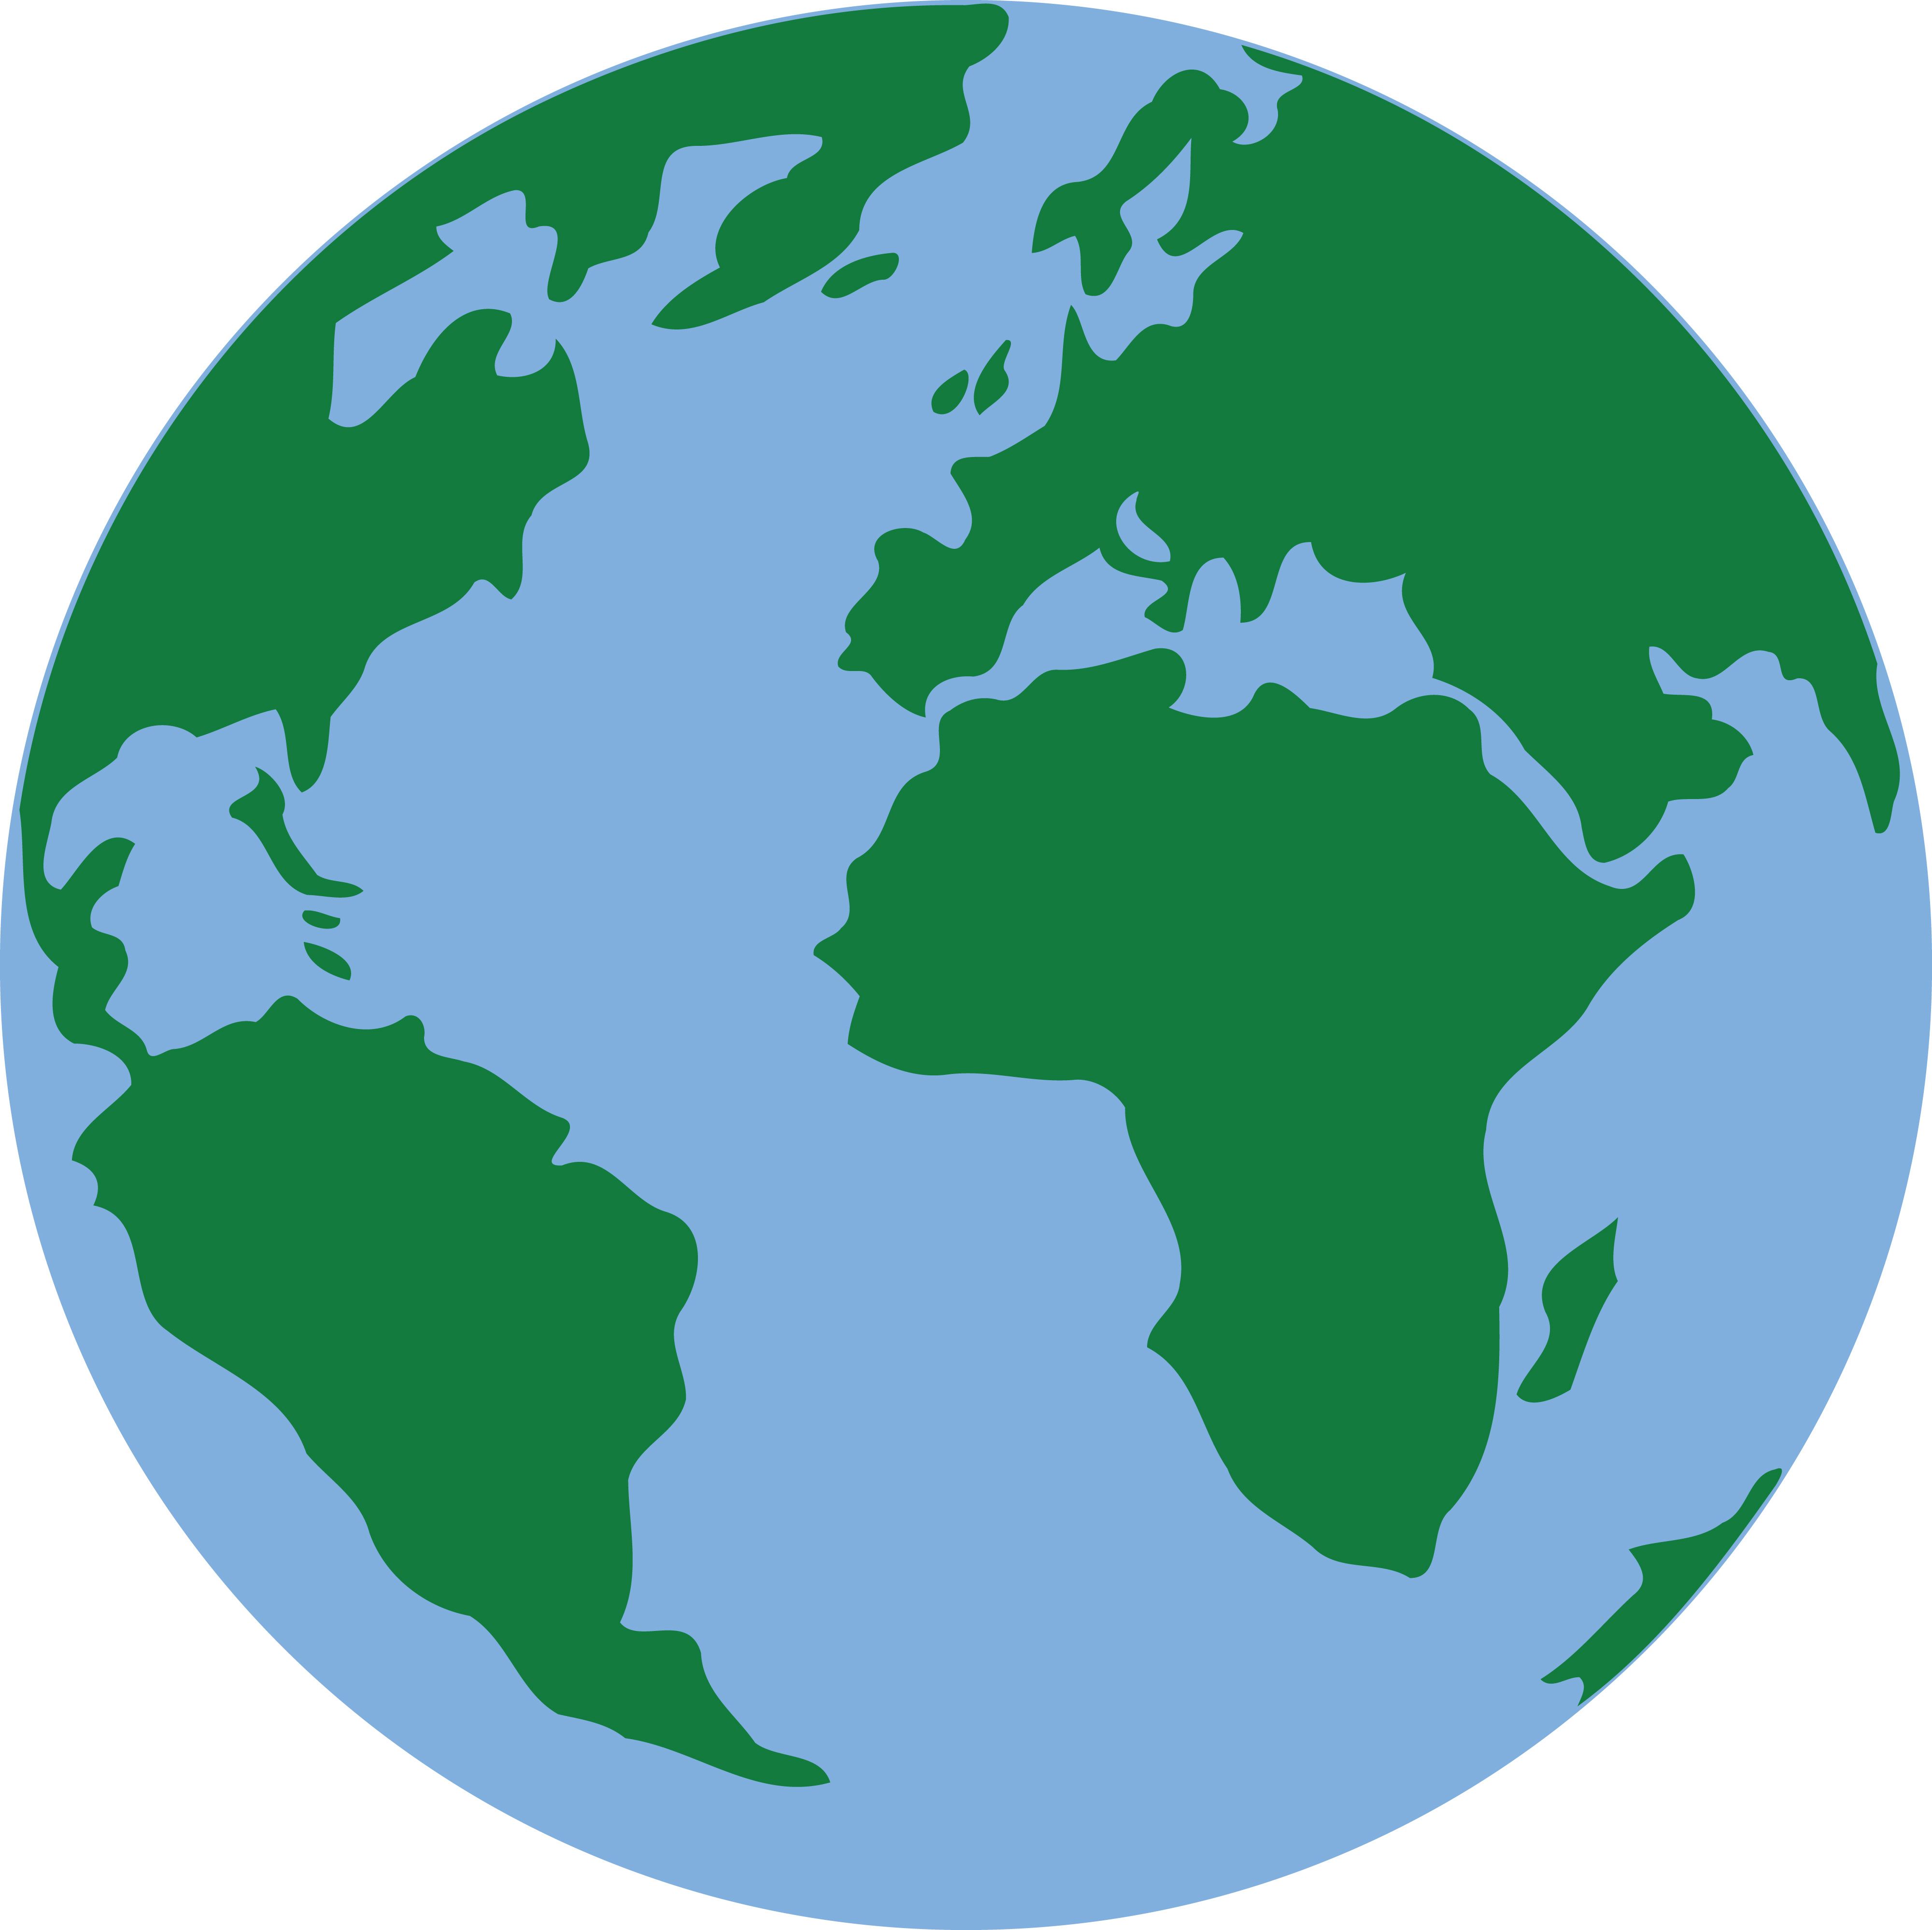 Free day at getdrawings. Earth clipart